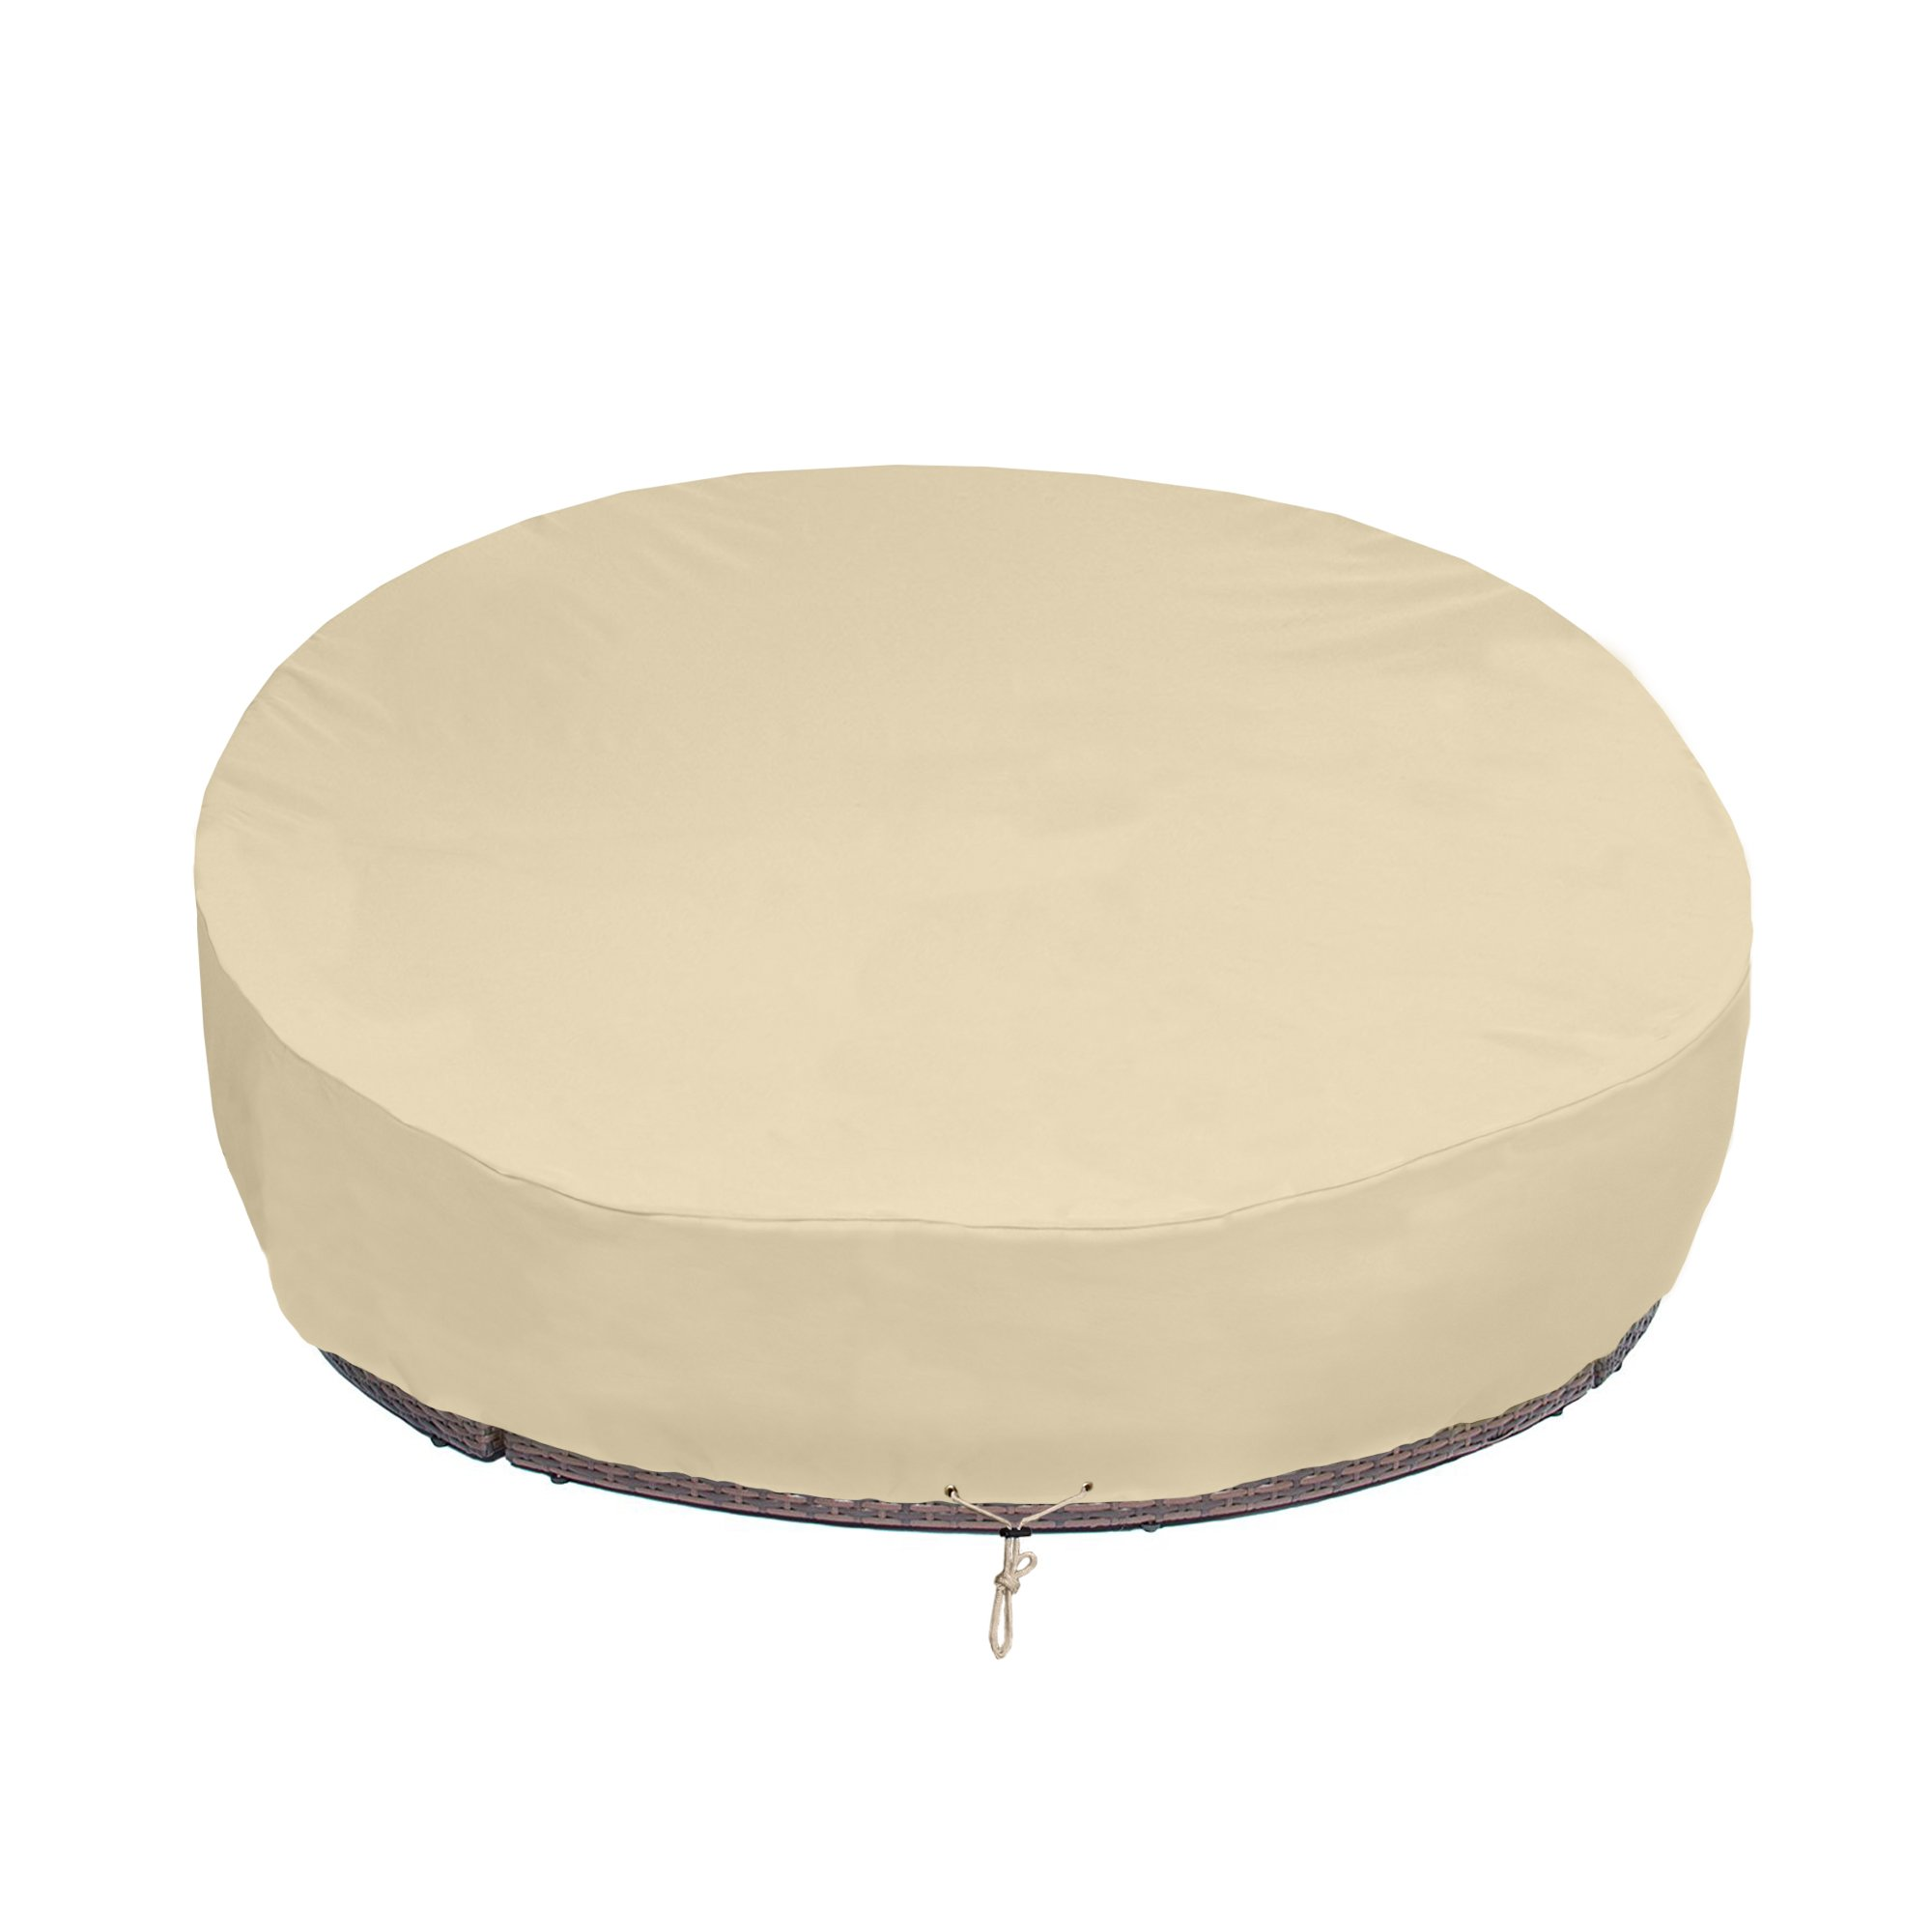 SunPatio Round Patio Daybed Cover 88 Inch, Heavy Duty Outdoor Canopy Daybed Sofa Cover with Waterproof Sealed Seam, 88'' L x 85'' W x 35''/16'' H, All Weather Protection, Beige by SunPatio